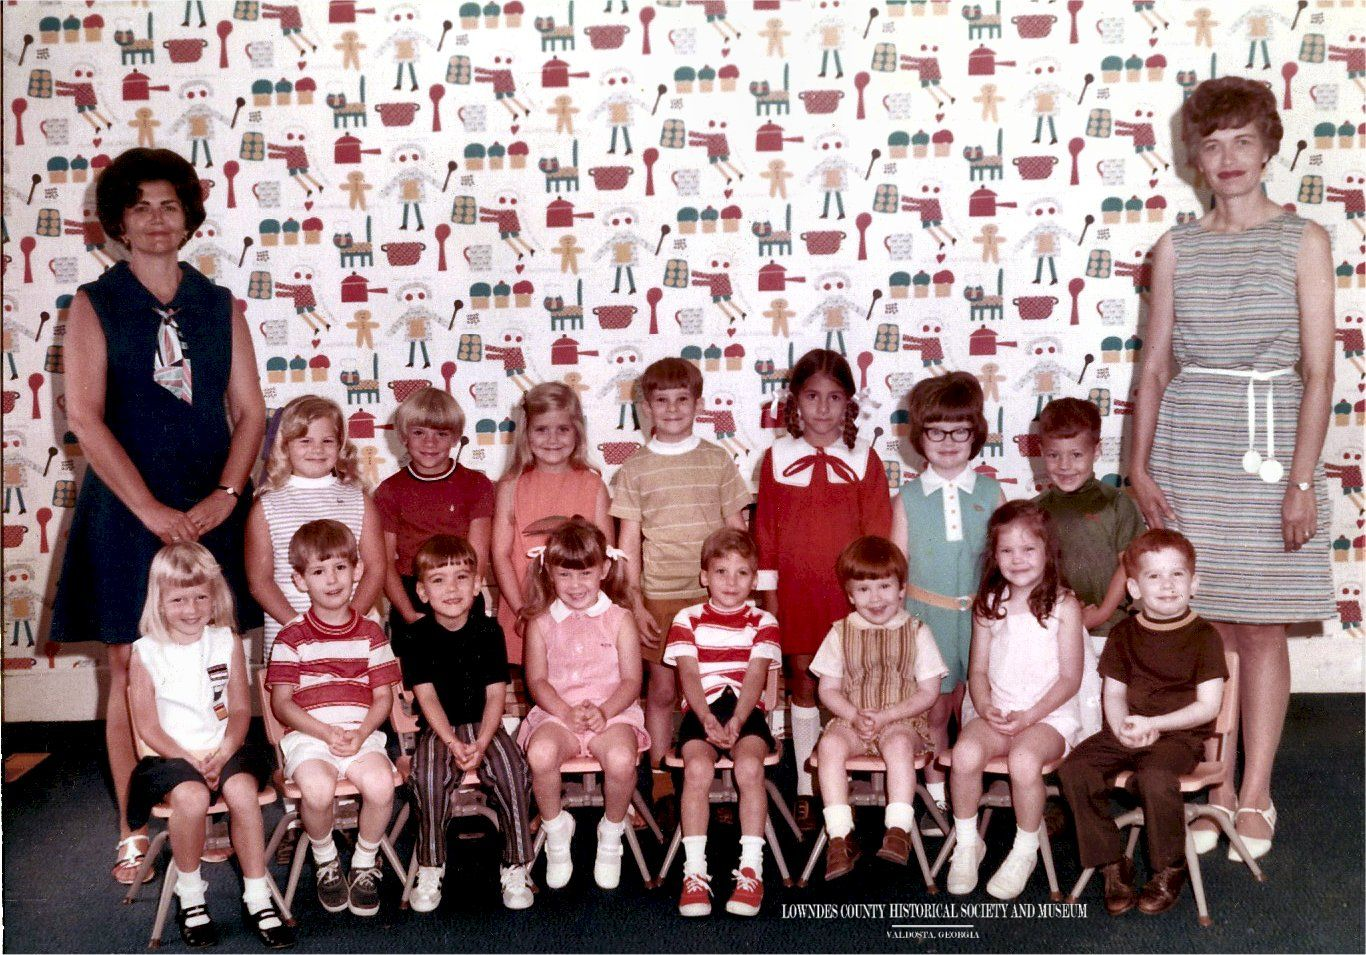 Blackburn's Kindergarten, 1970